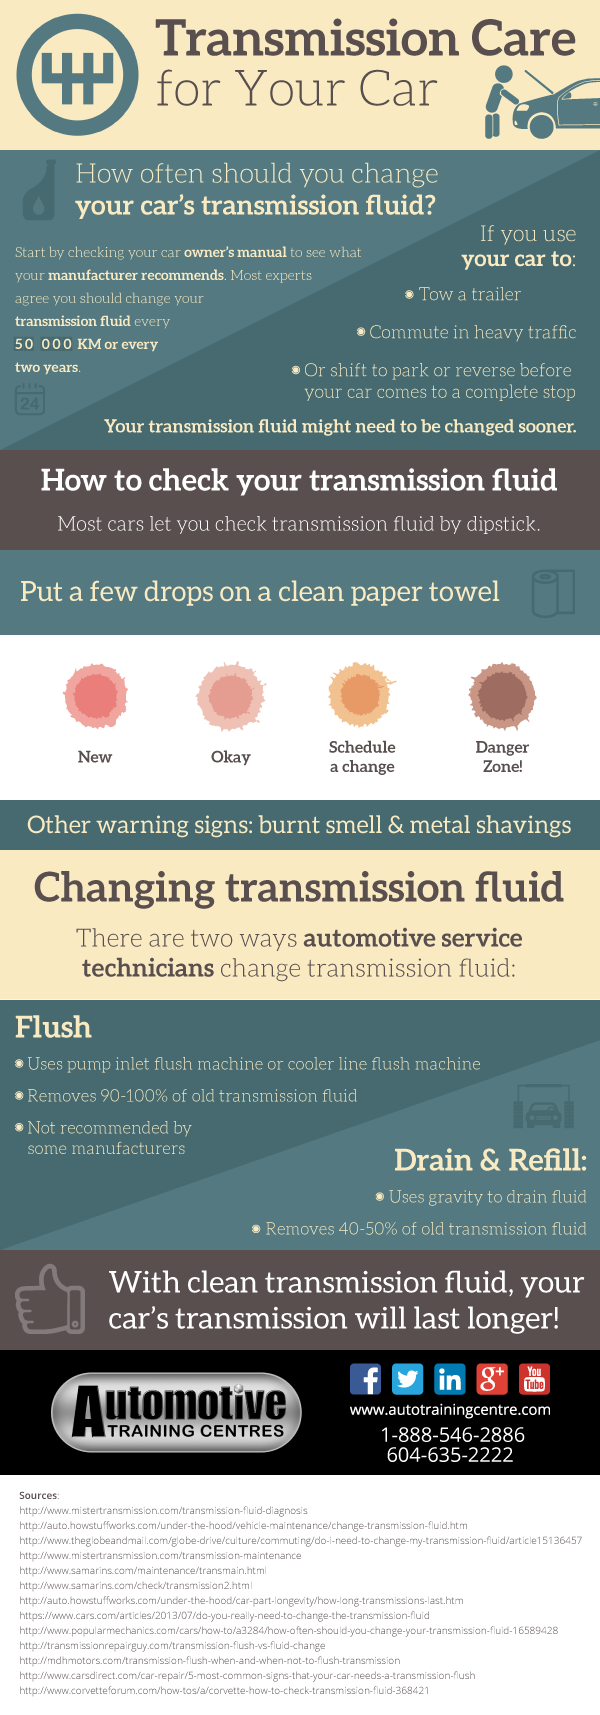 ATC_transmission_care_infographic